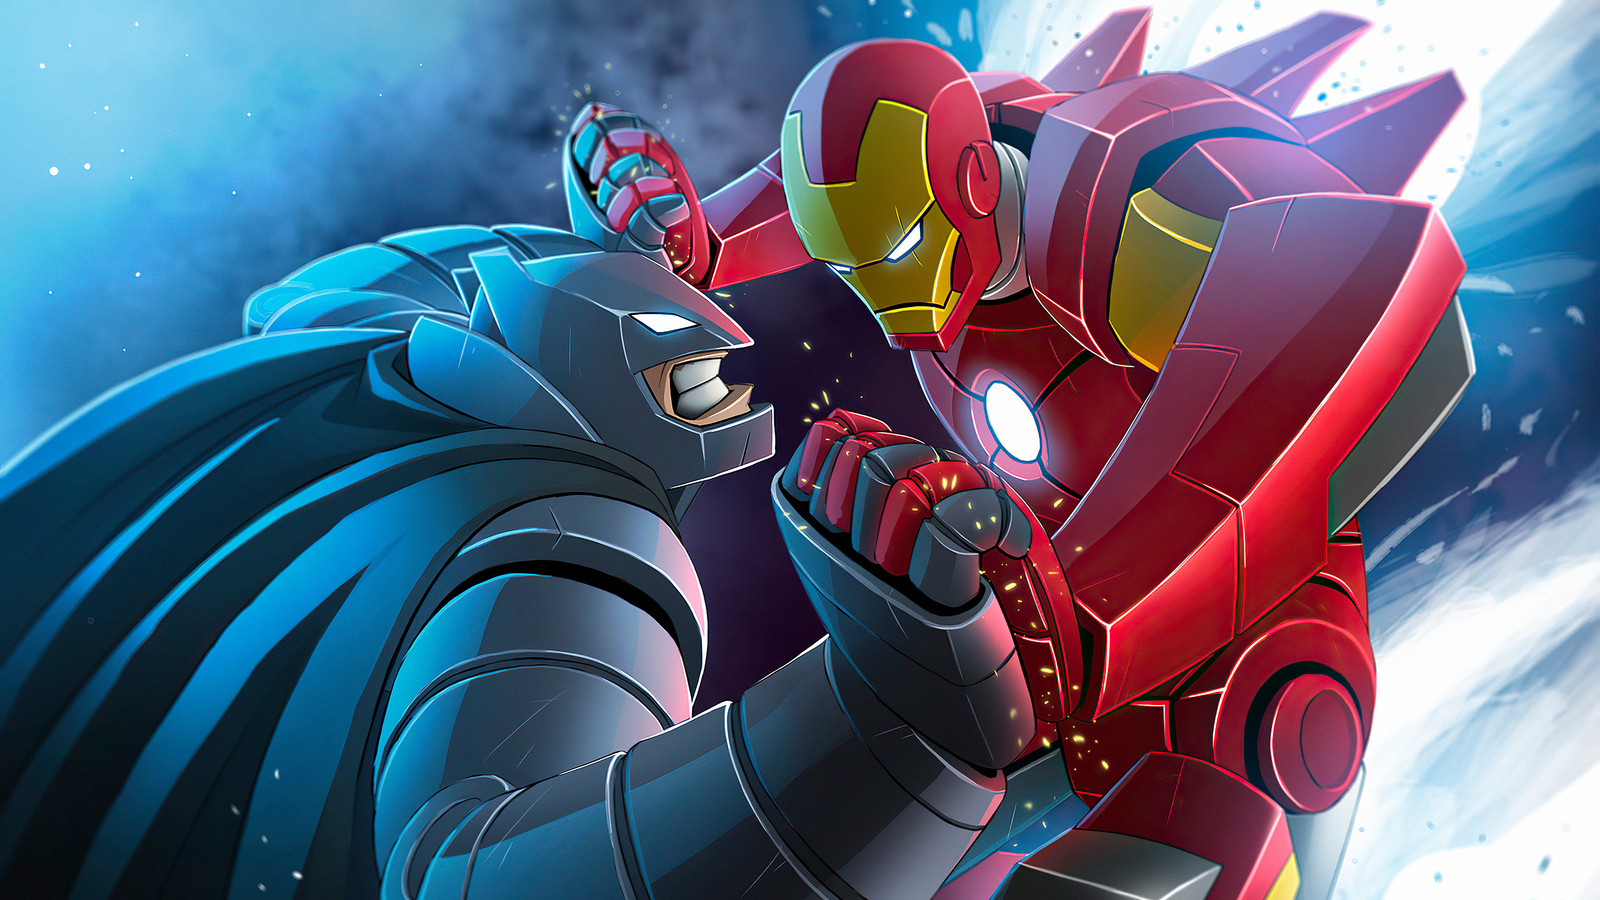 bat-man-and-iron-man-bv.jpg